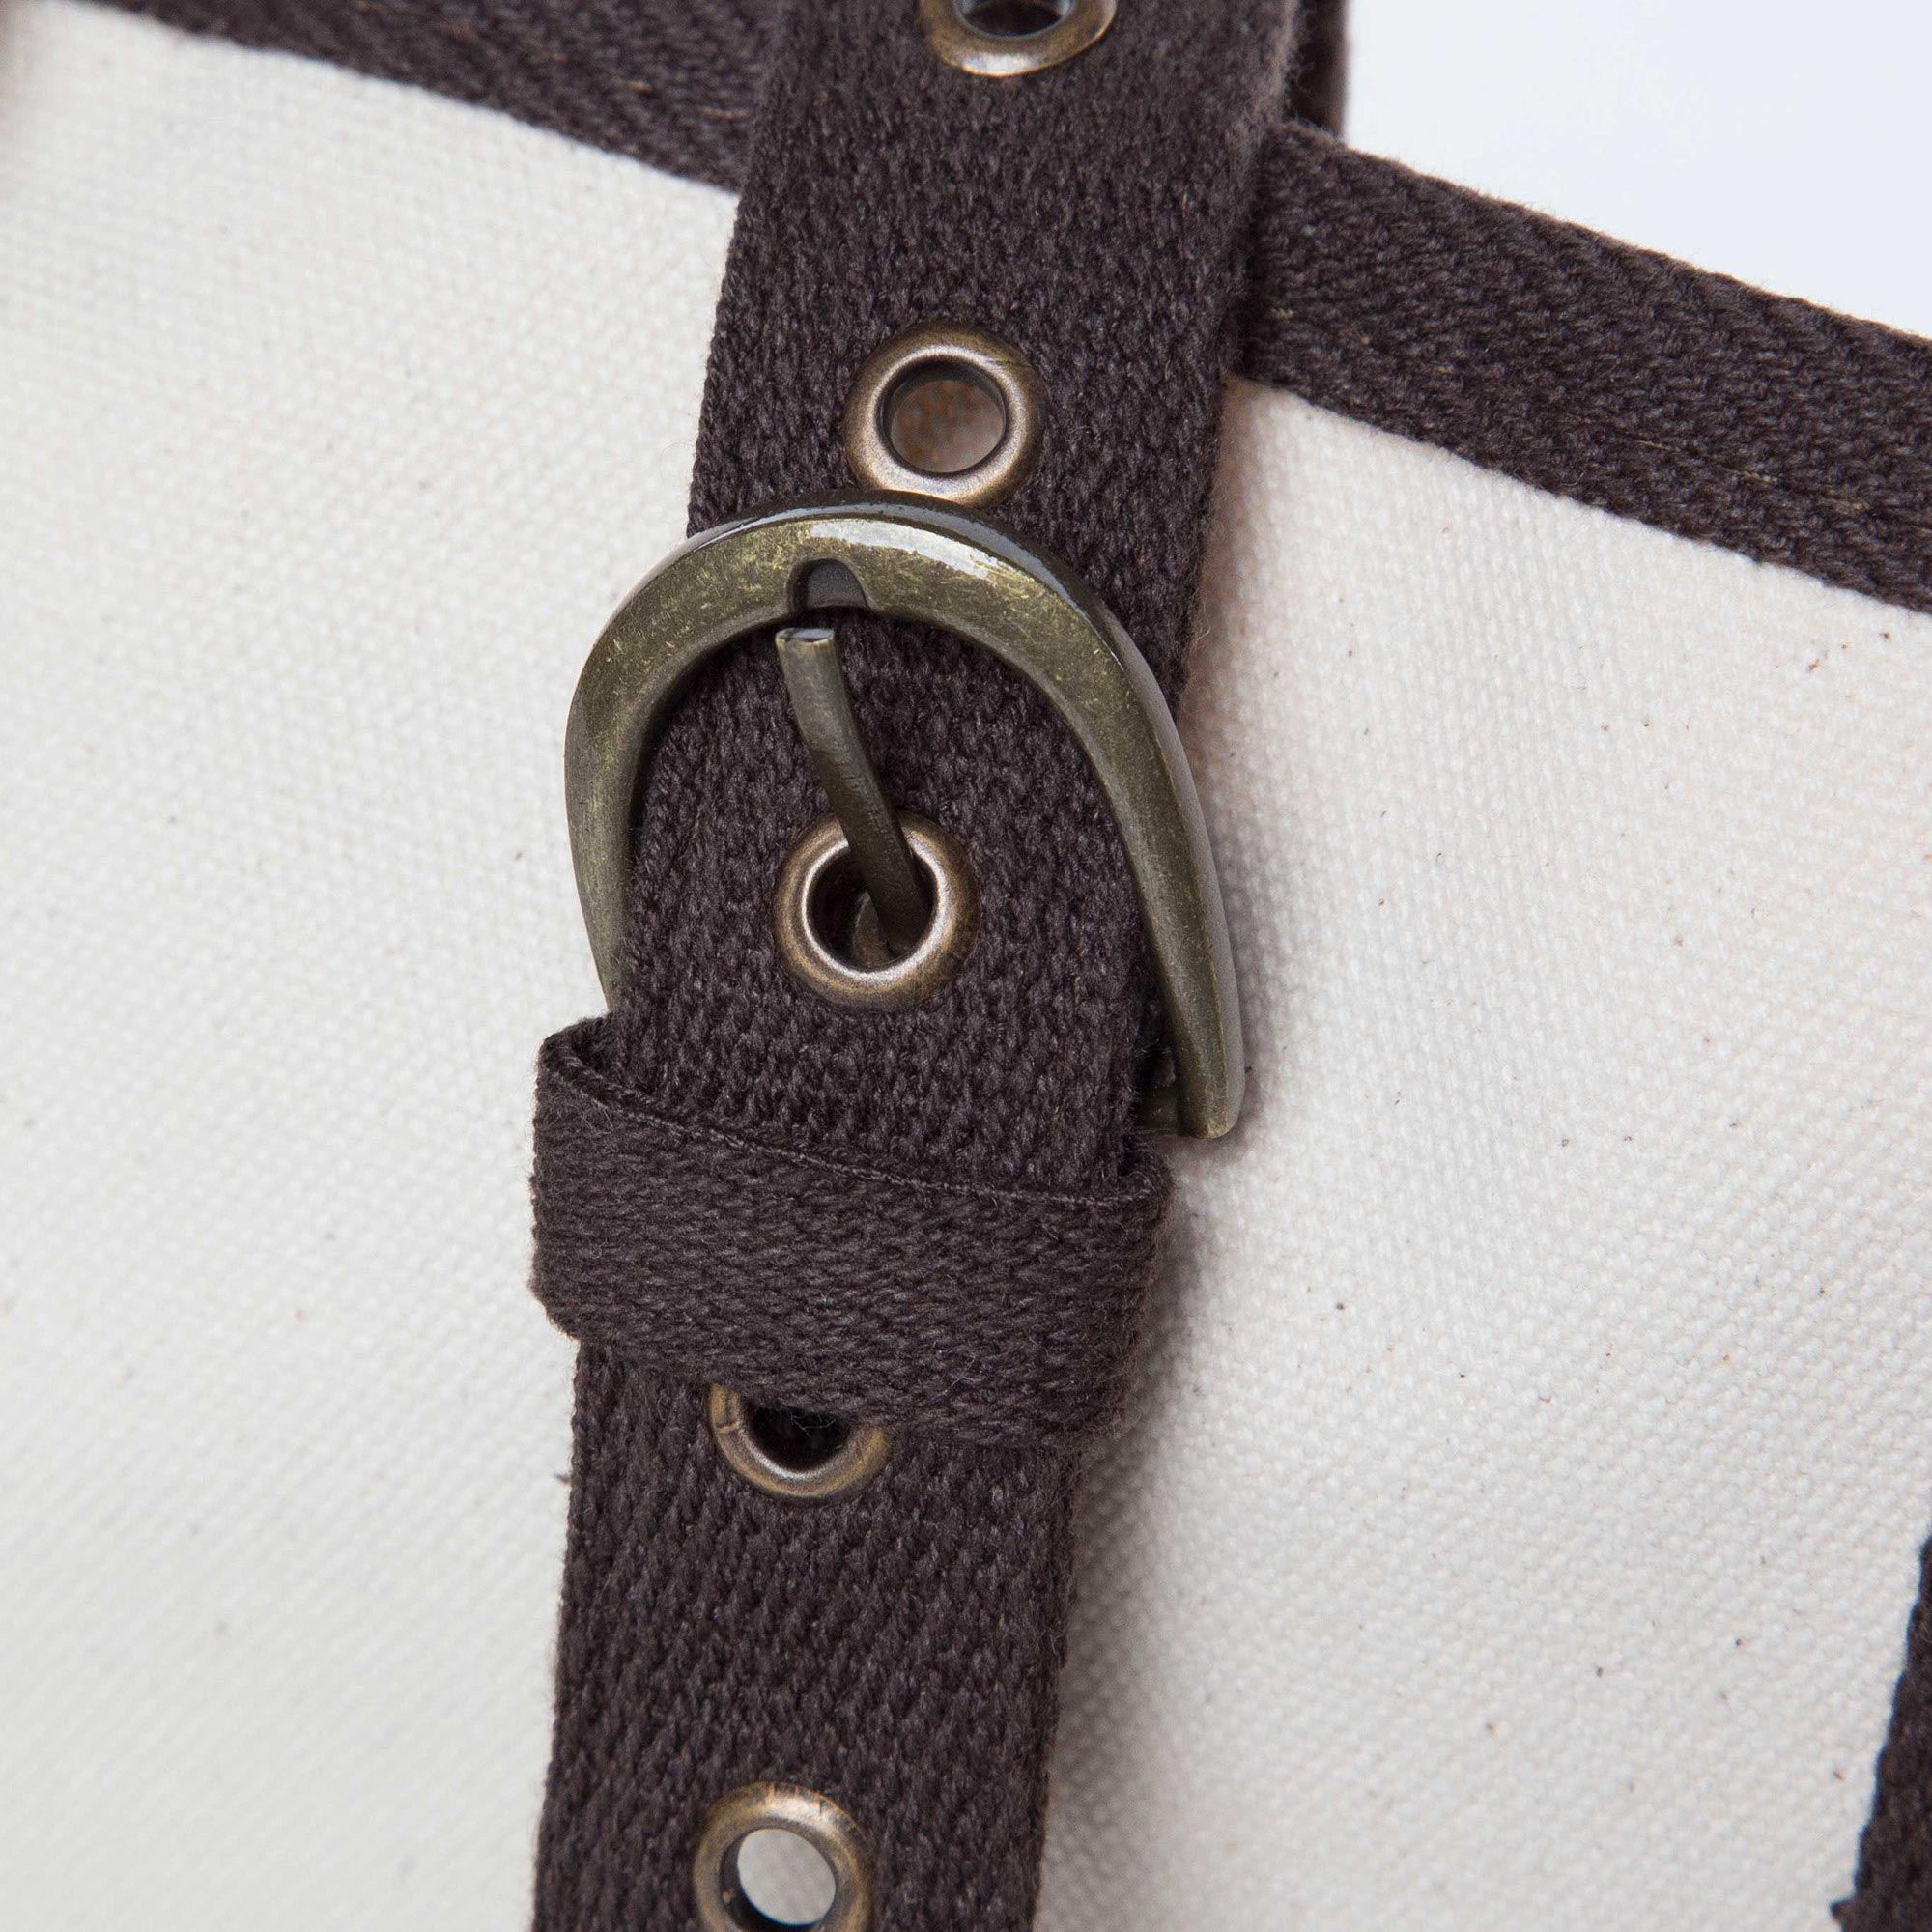 Adjustable buckle closure